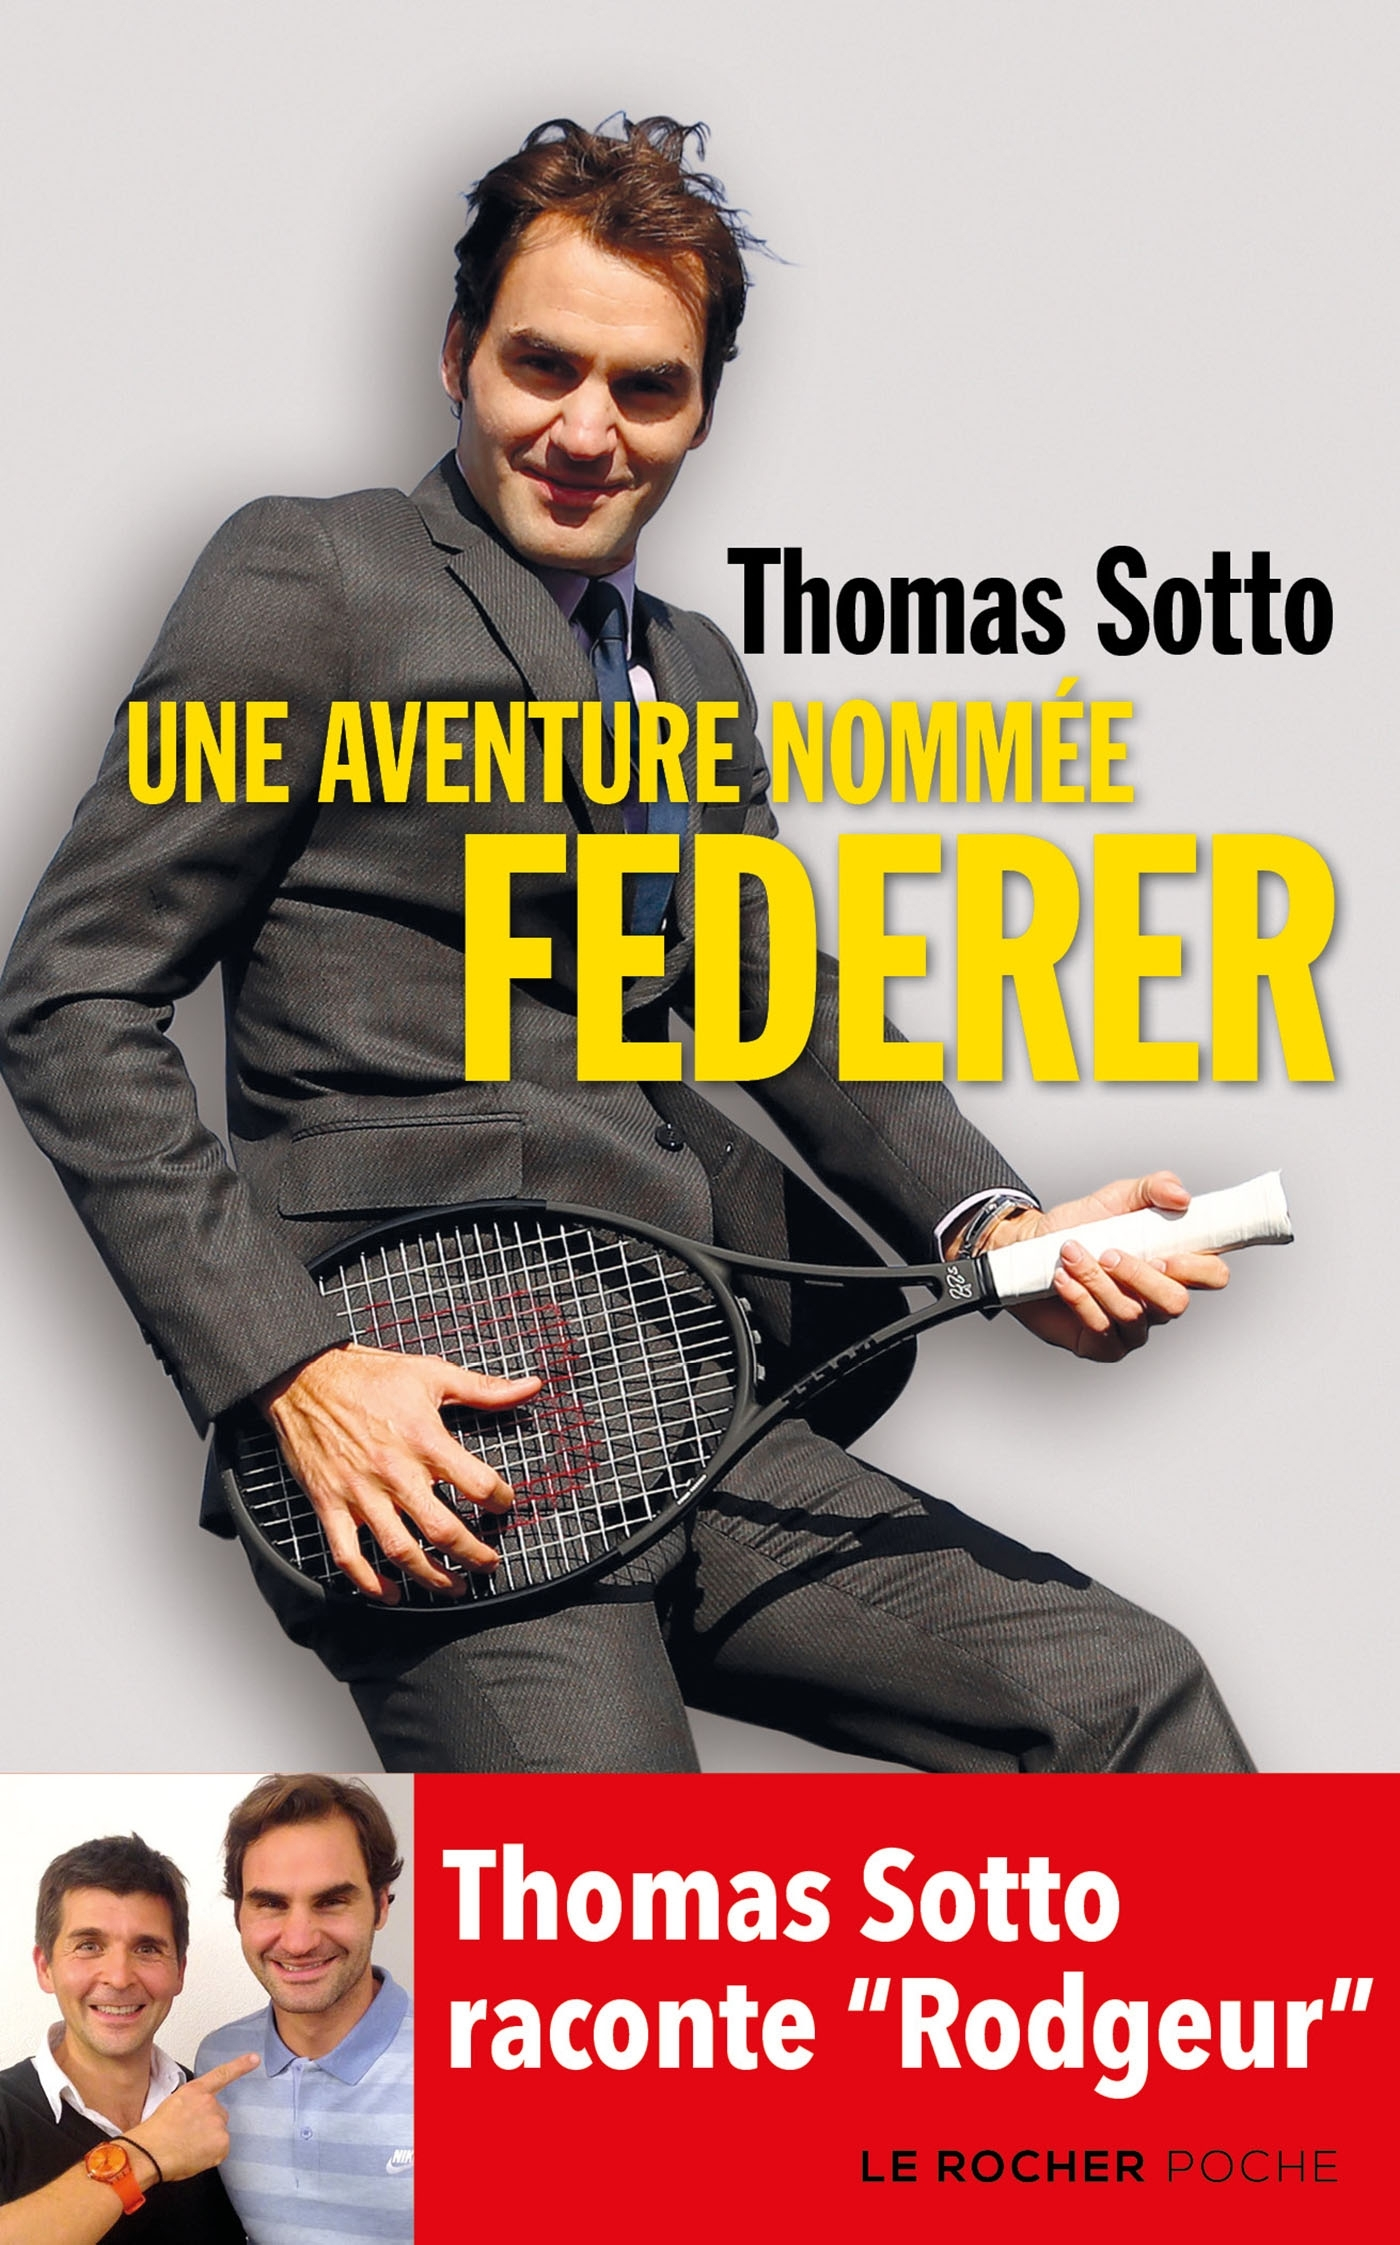 "UNE AVENTURE NOMMEE FEDERER - THOMAS SOTTO RACONTE ""RODGEUR"""